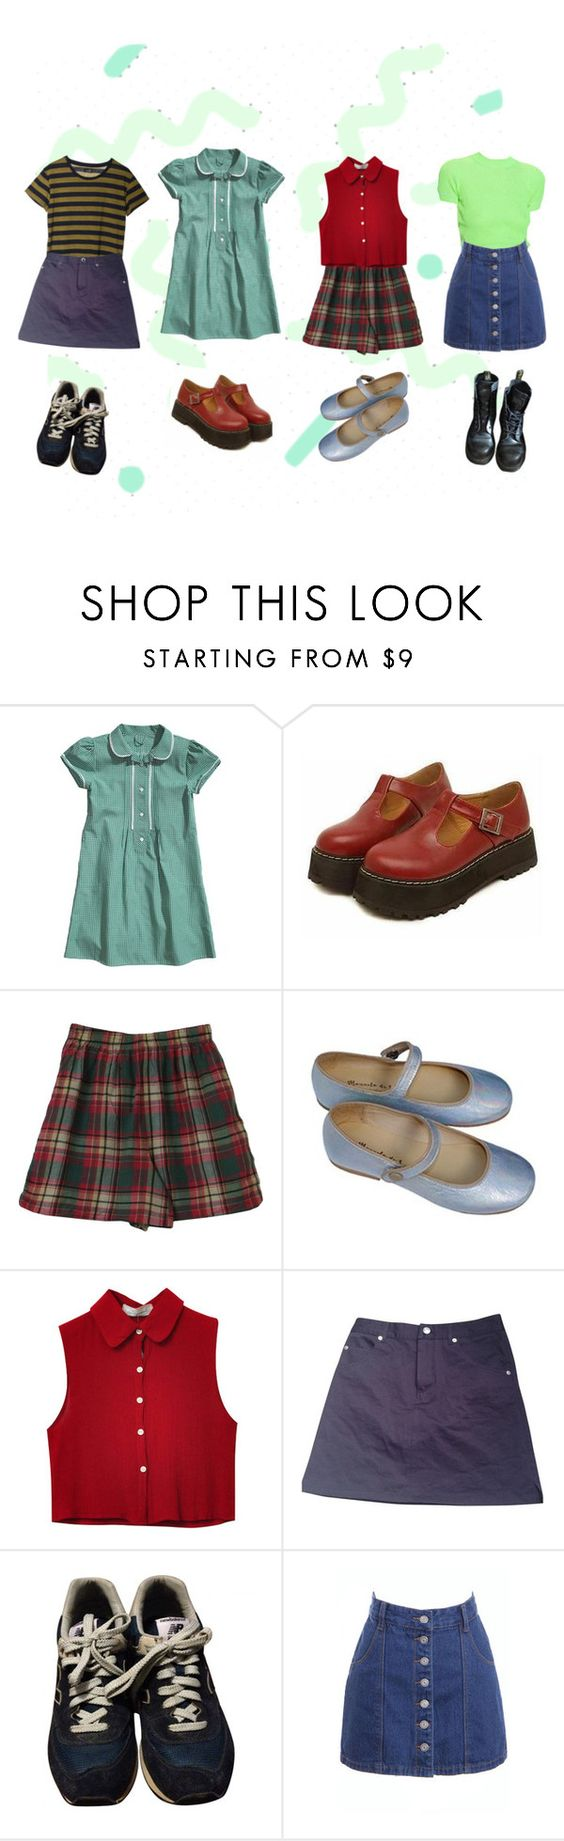 """Untitled #241"" by paraparappa ❤ liked on Polyvore featuring Mancienne, Manuela de Juan, Cheap Monday, Chicnova Fashion, A.P.C., New Balance and Dr. Martens"